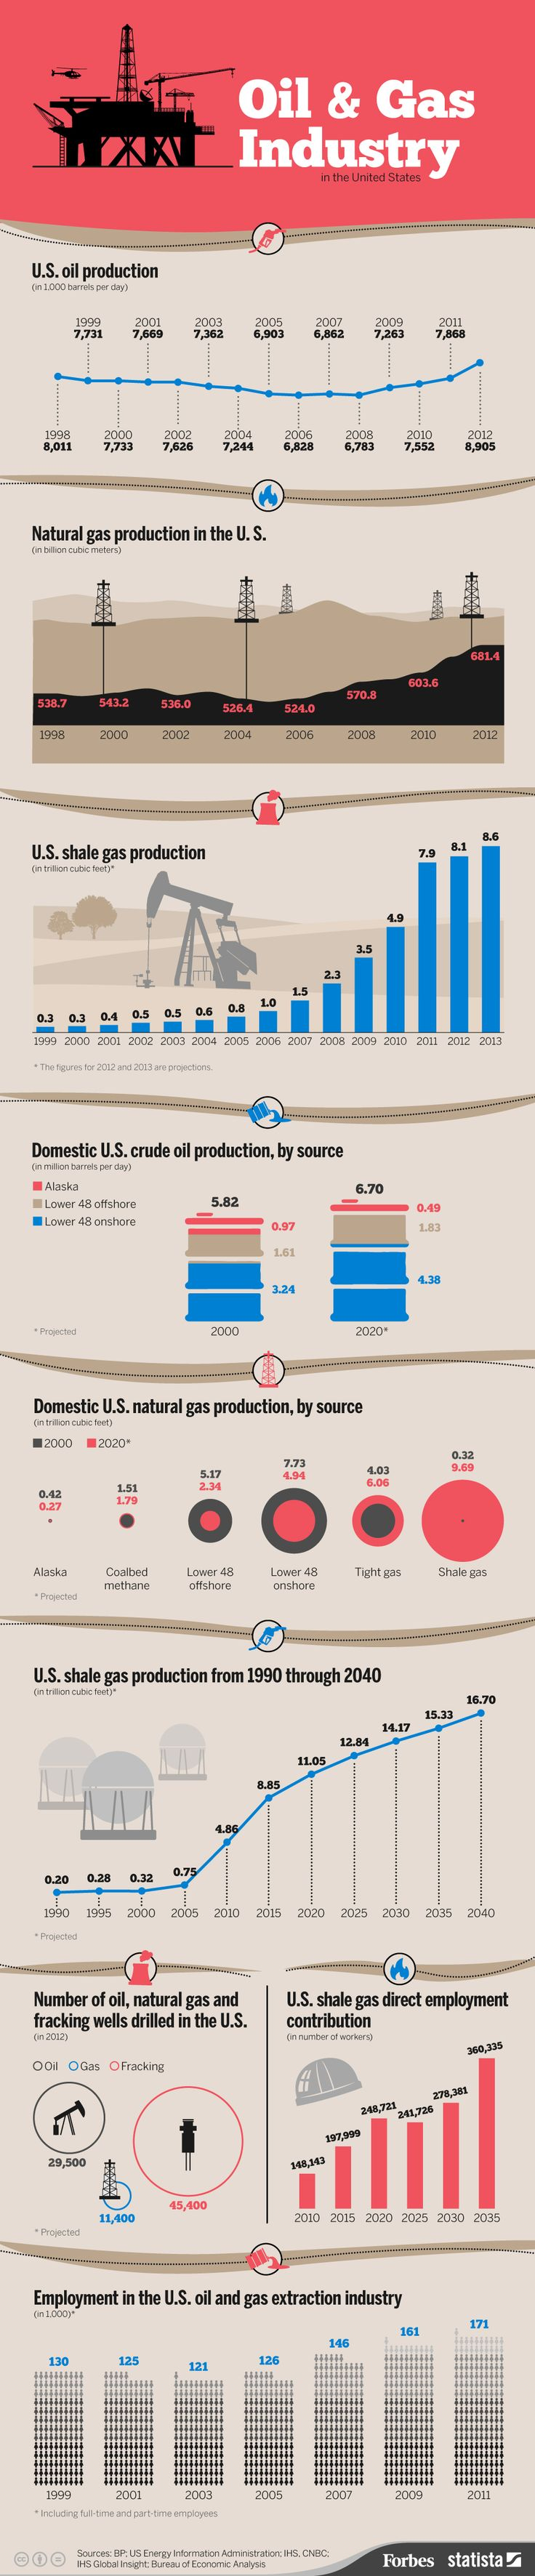 Wow, look at all that U.S. oil production! One step closer to American Energy Independence!